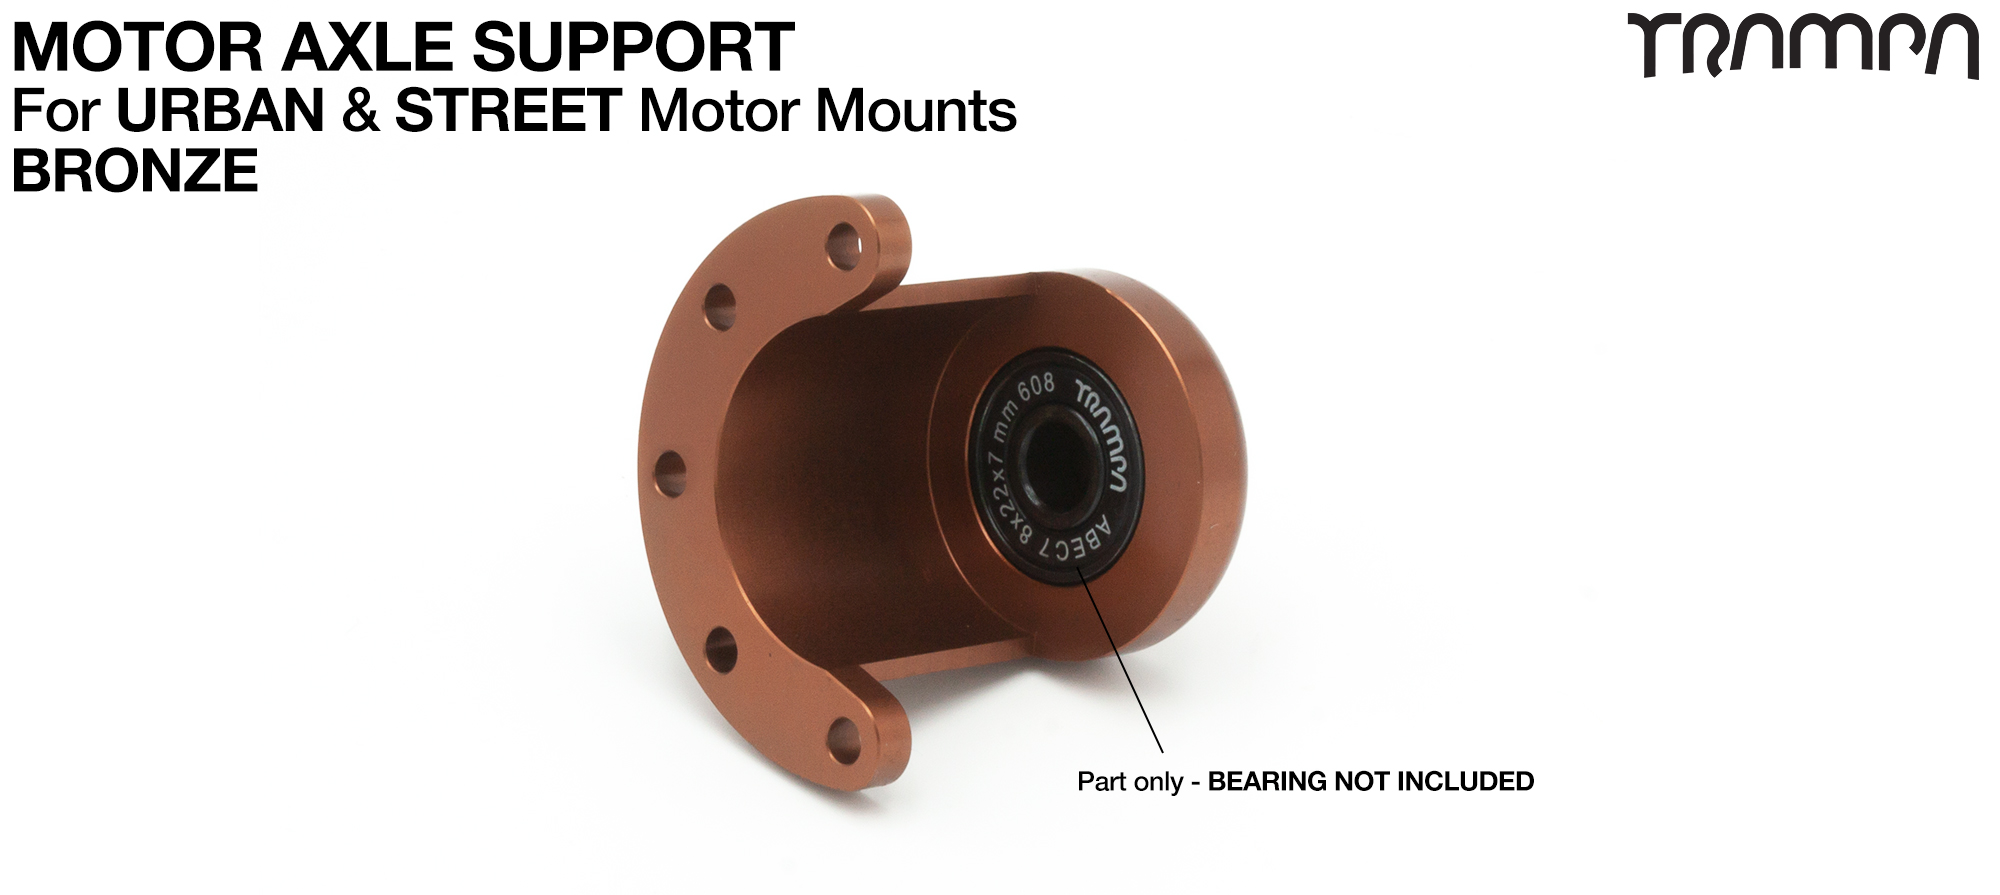 Universal Motor Axle Support - BRONZE